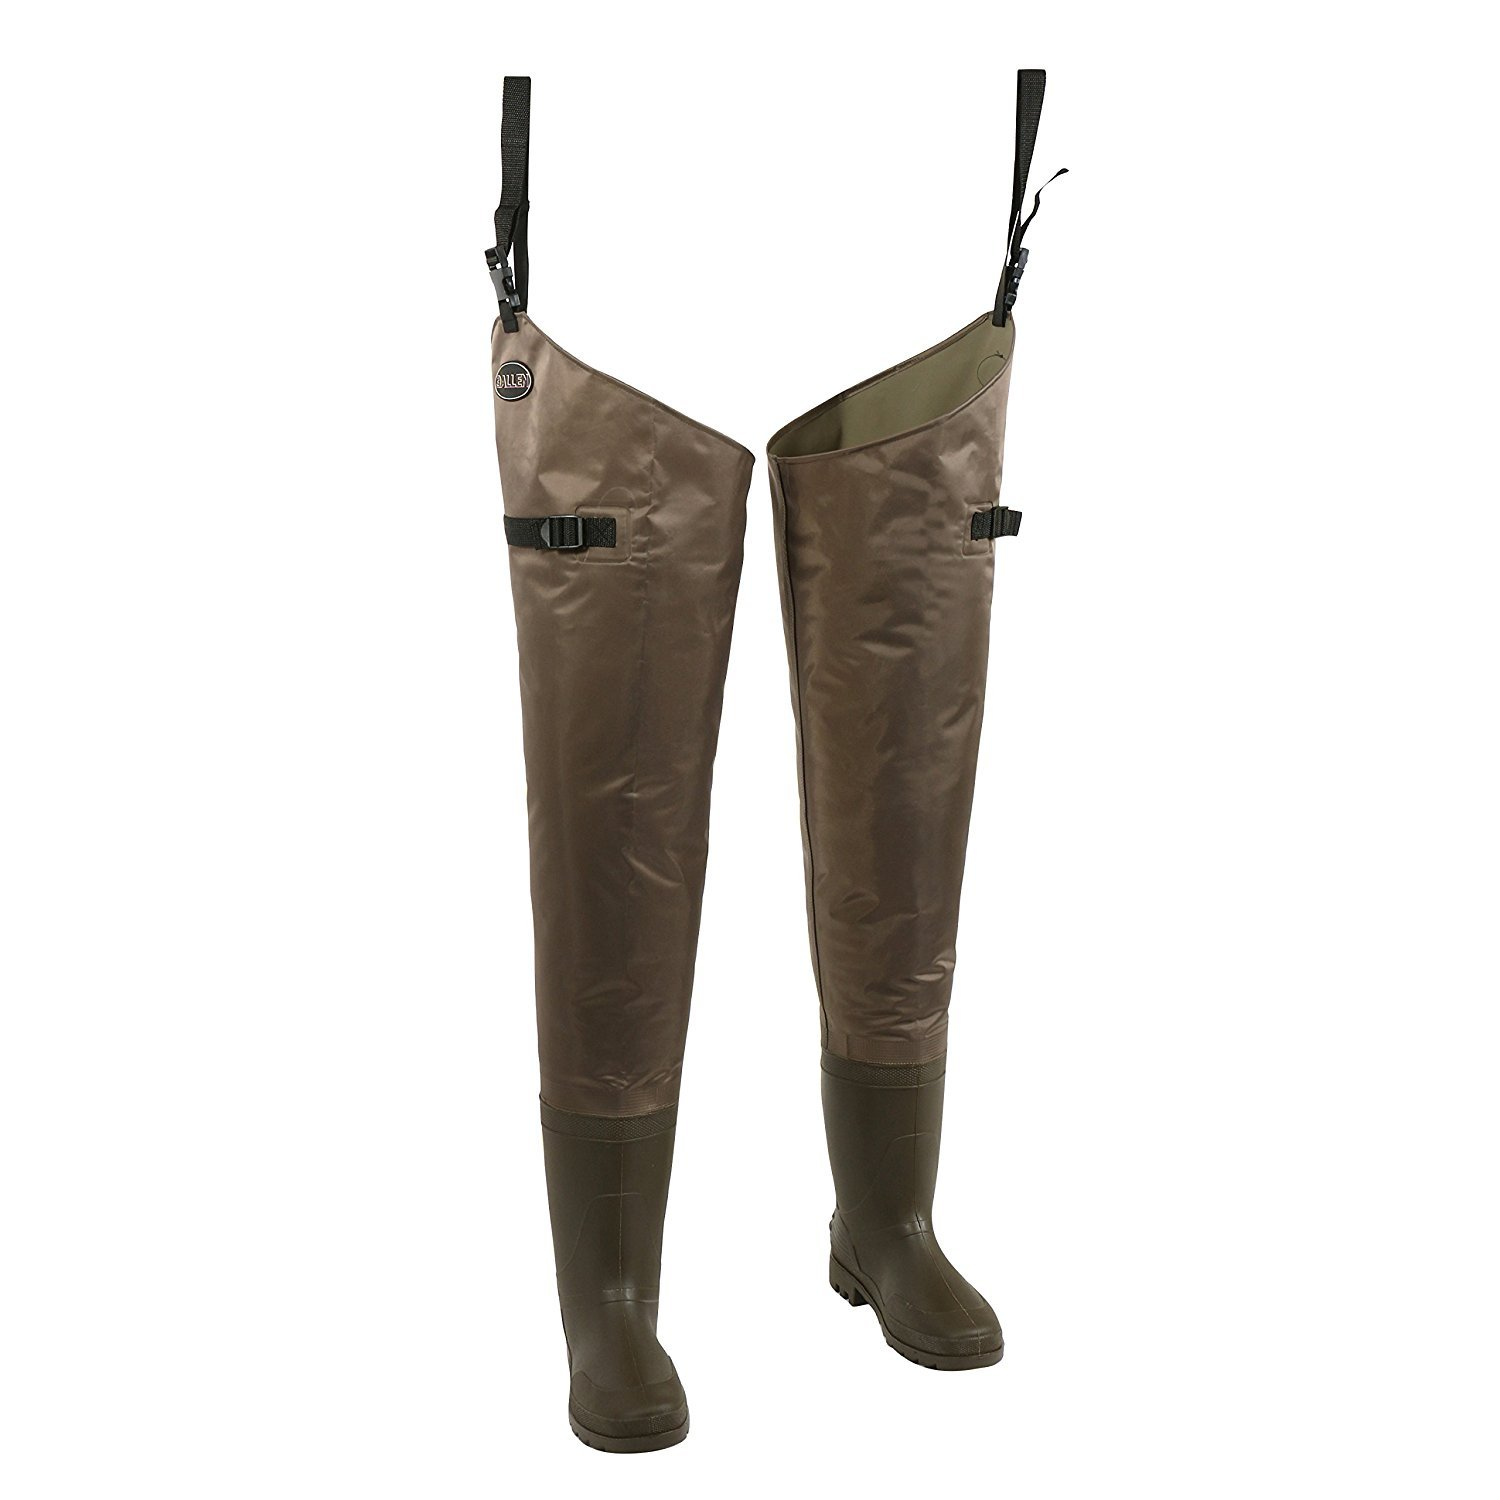 Allan Bootfoot hip Waders